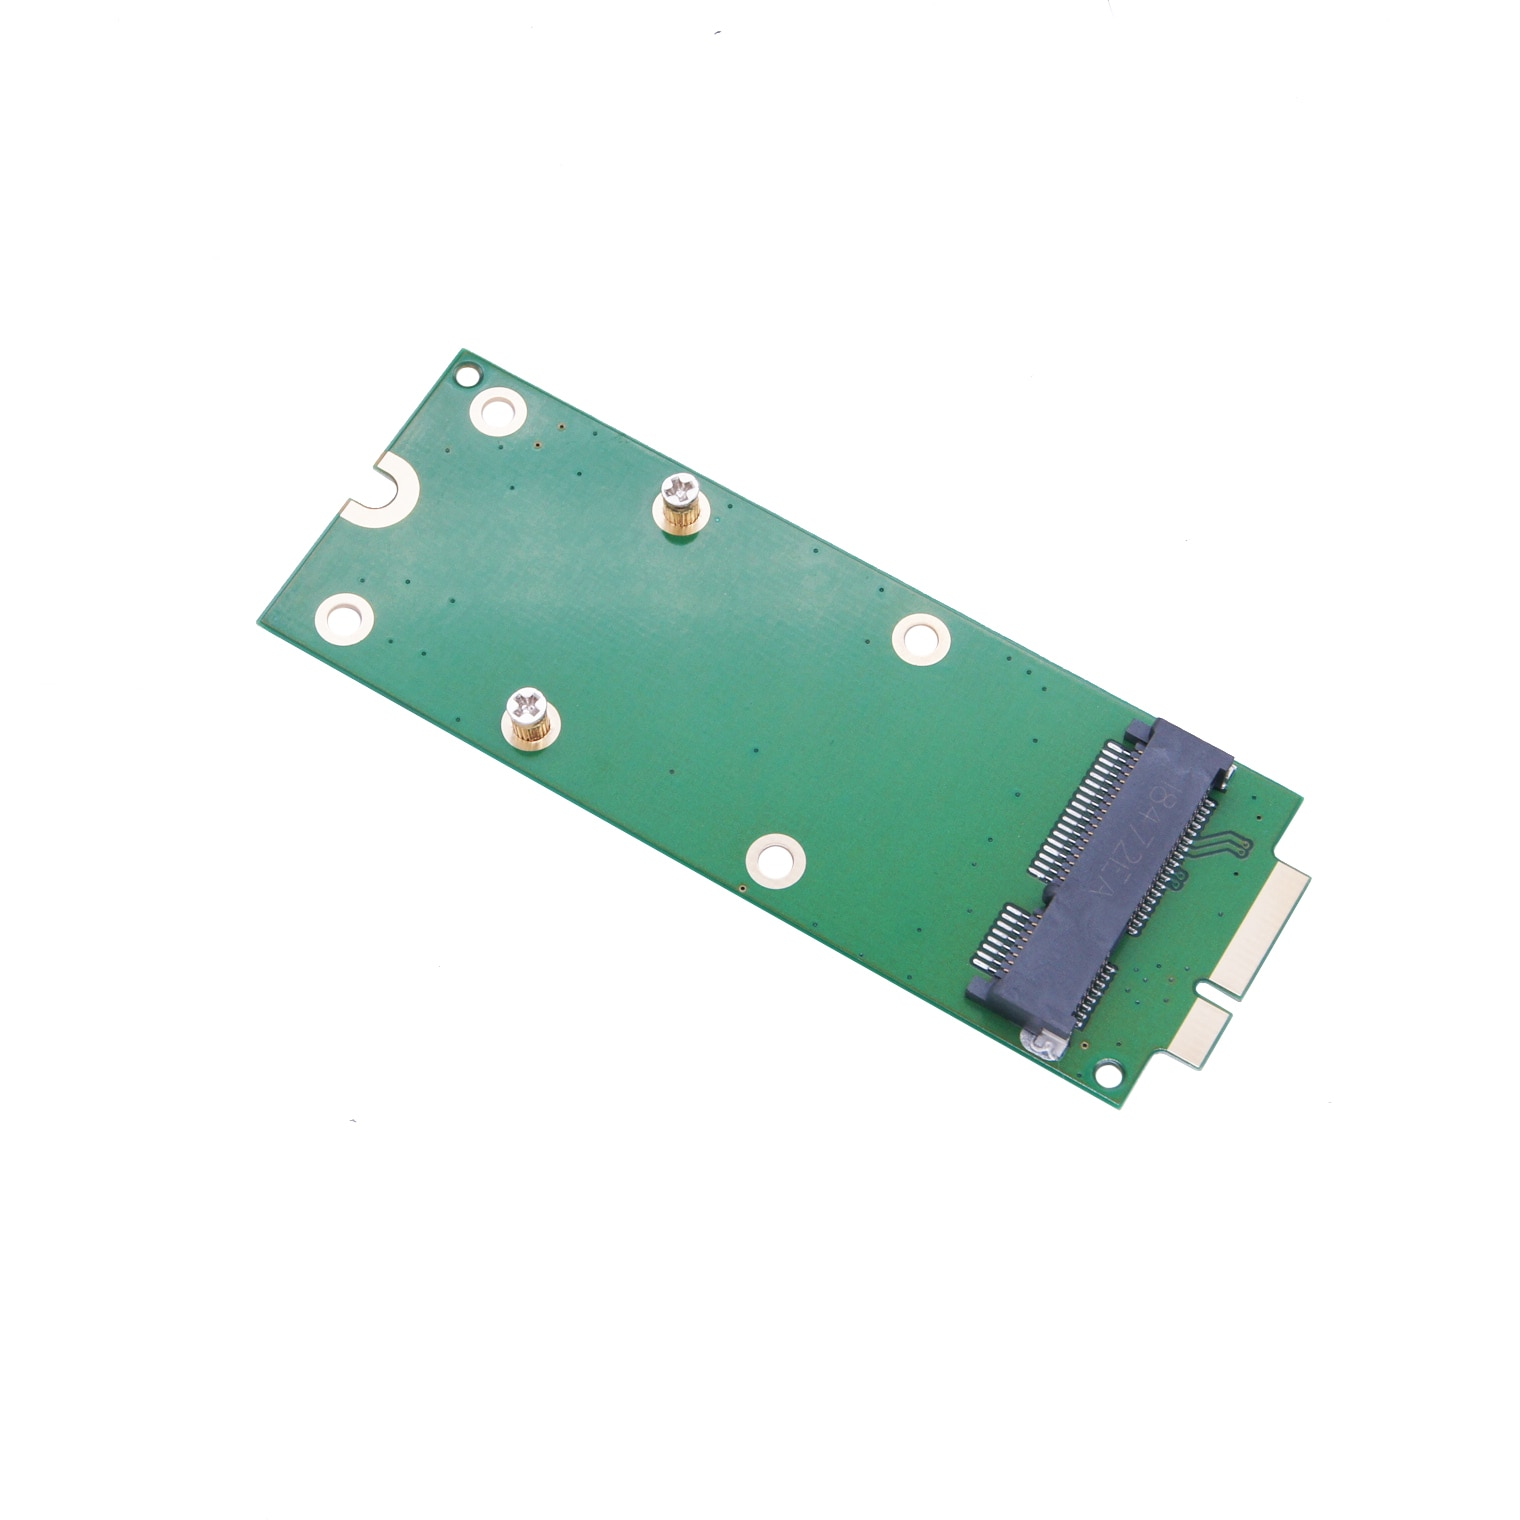 pci e to sata3 0 card third generation pcie sata3 expansion card ssd solid state drive system startup Nimi PCI-E MSATA 2012 MacBook Retina Solid State Drive SSD adapter card